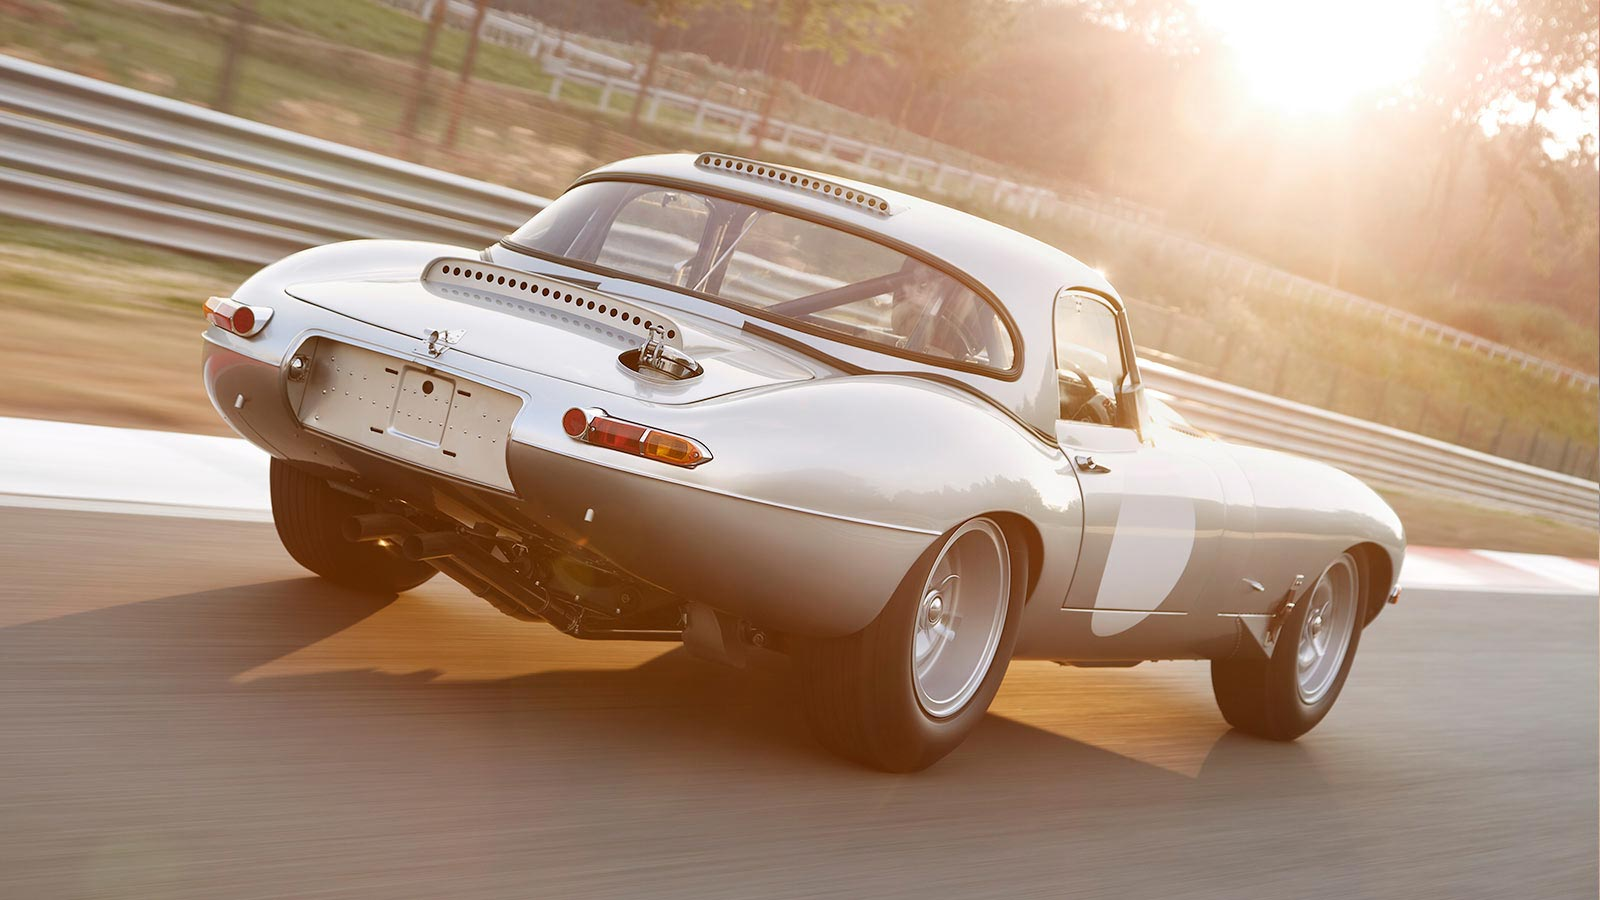 Jaguar Lightweight E-TYPE from behind driving on a race track.